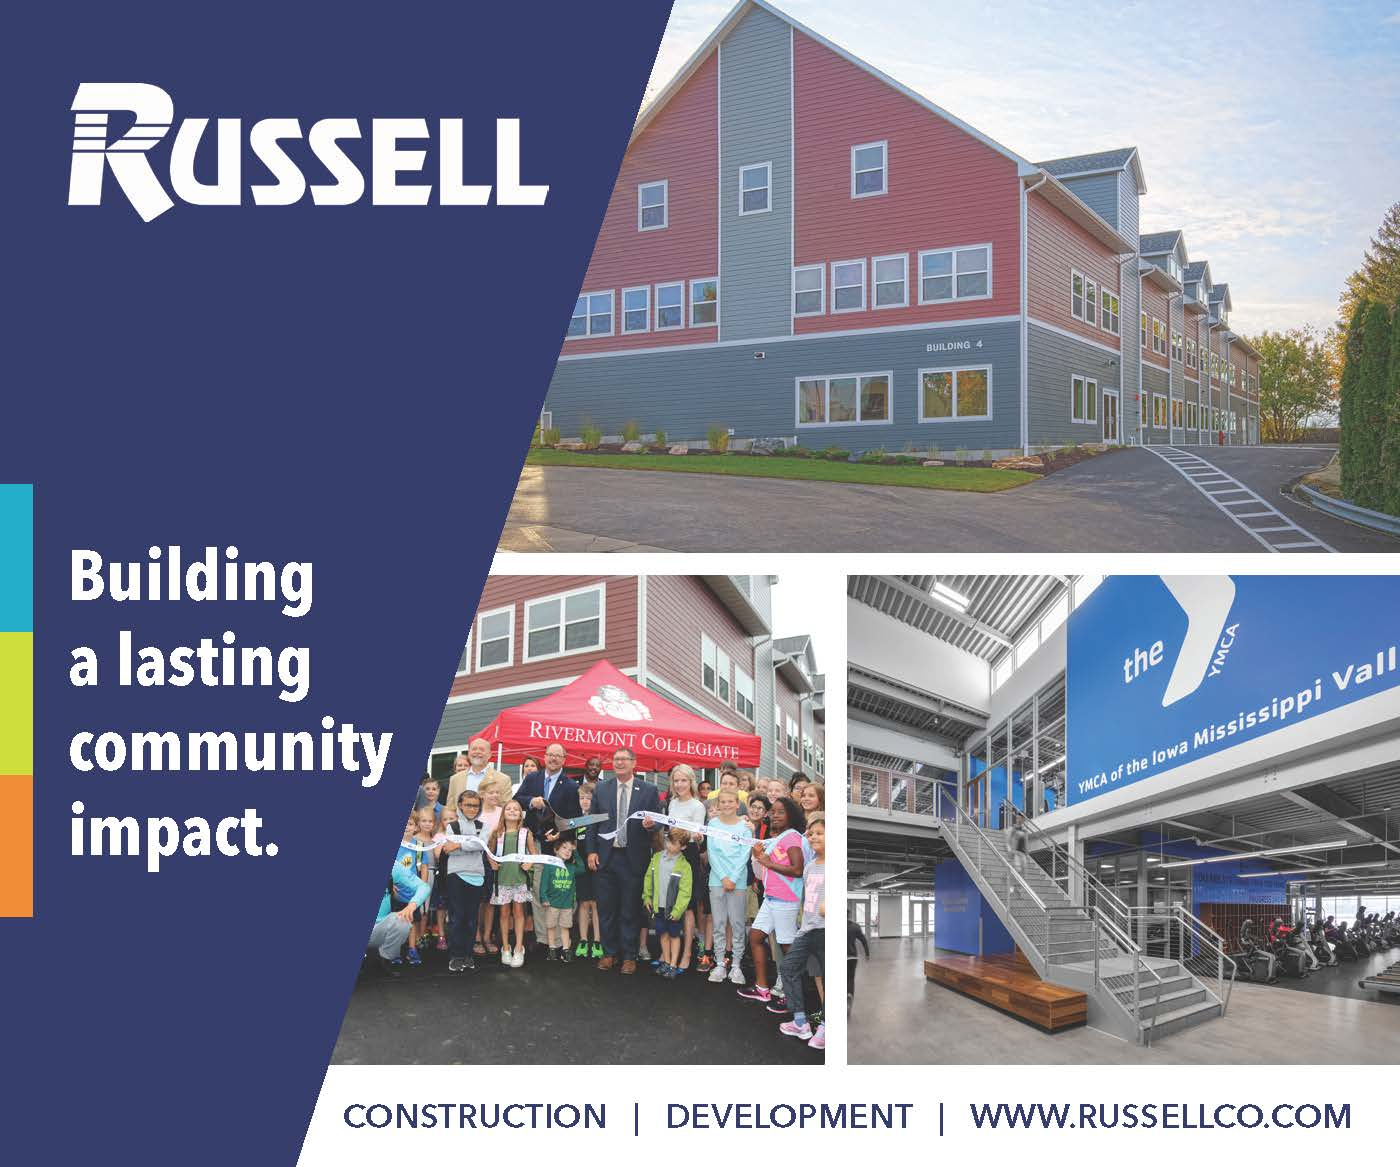 Russell Image